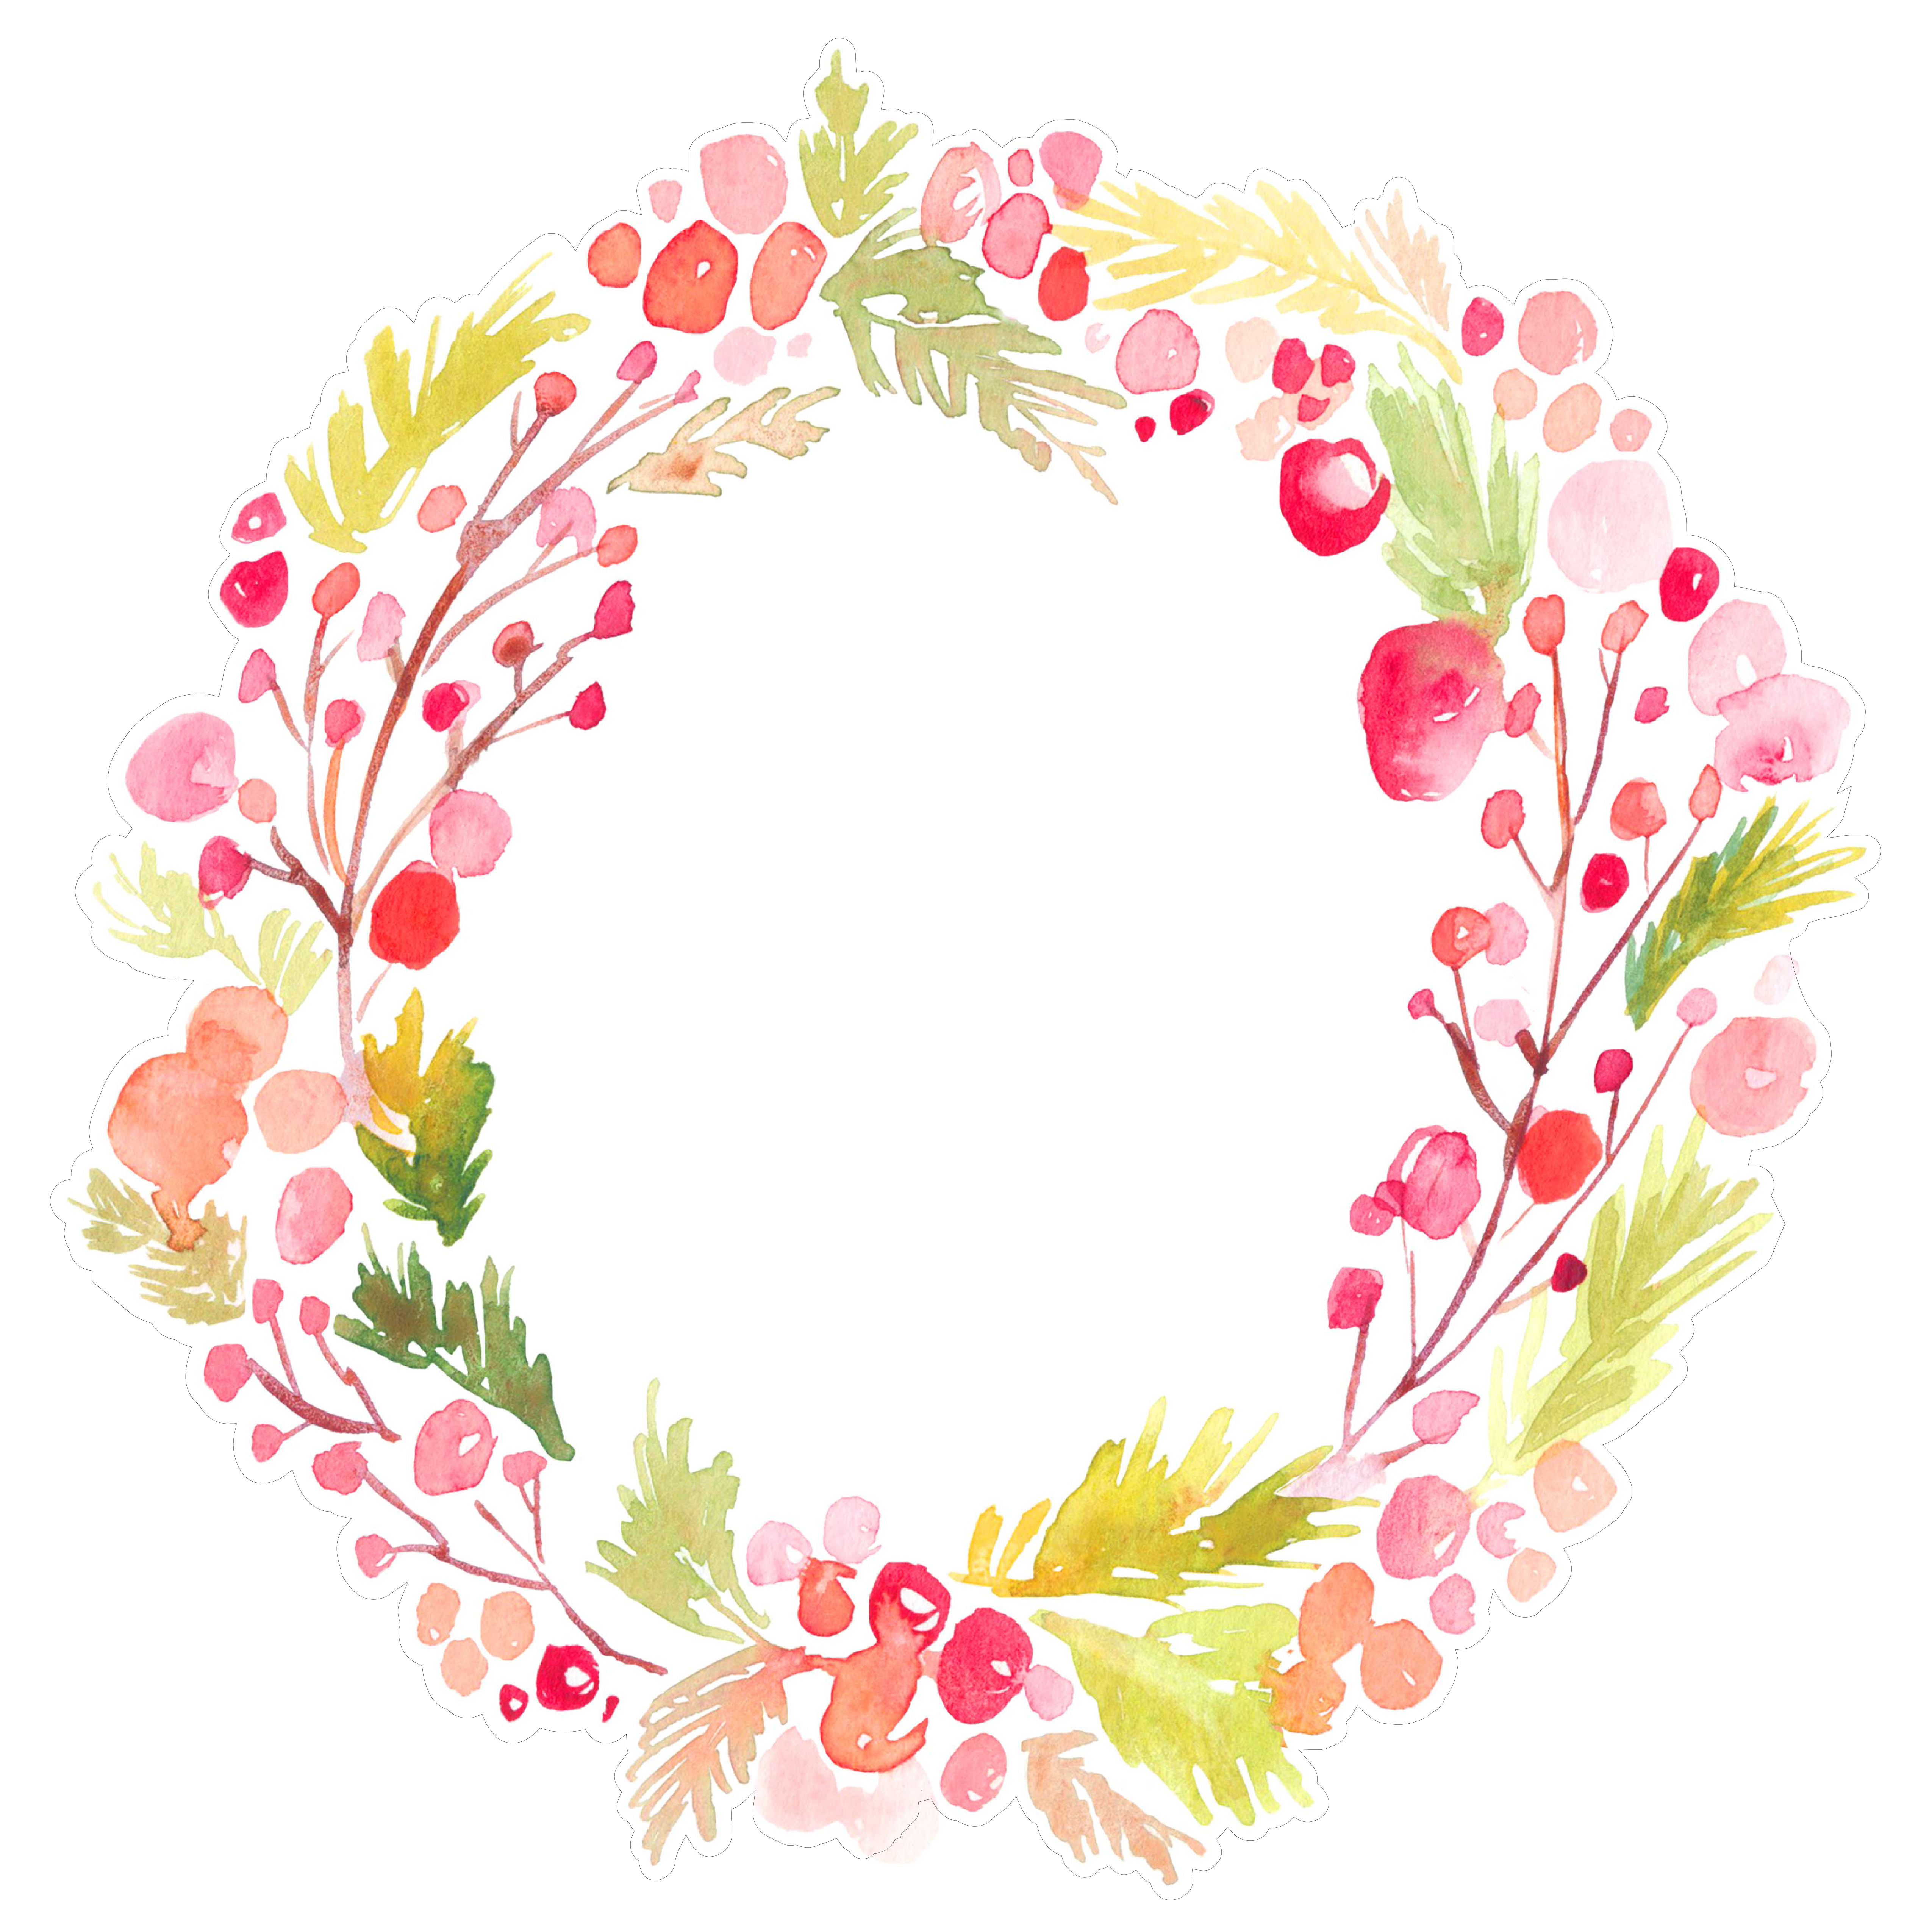 Christmas Wreath Background SVG File   Watercolor Christmas Wreath 5100x5100